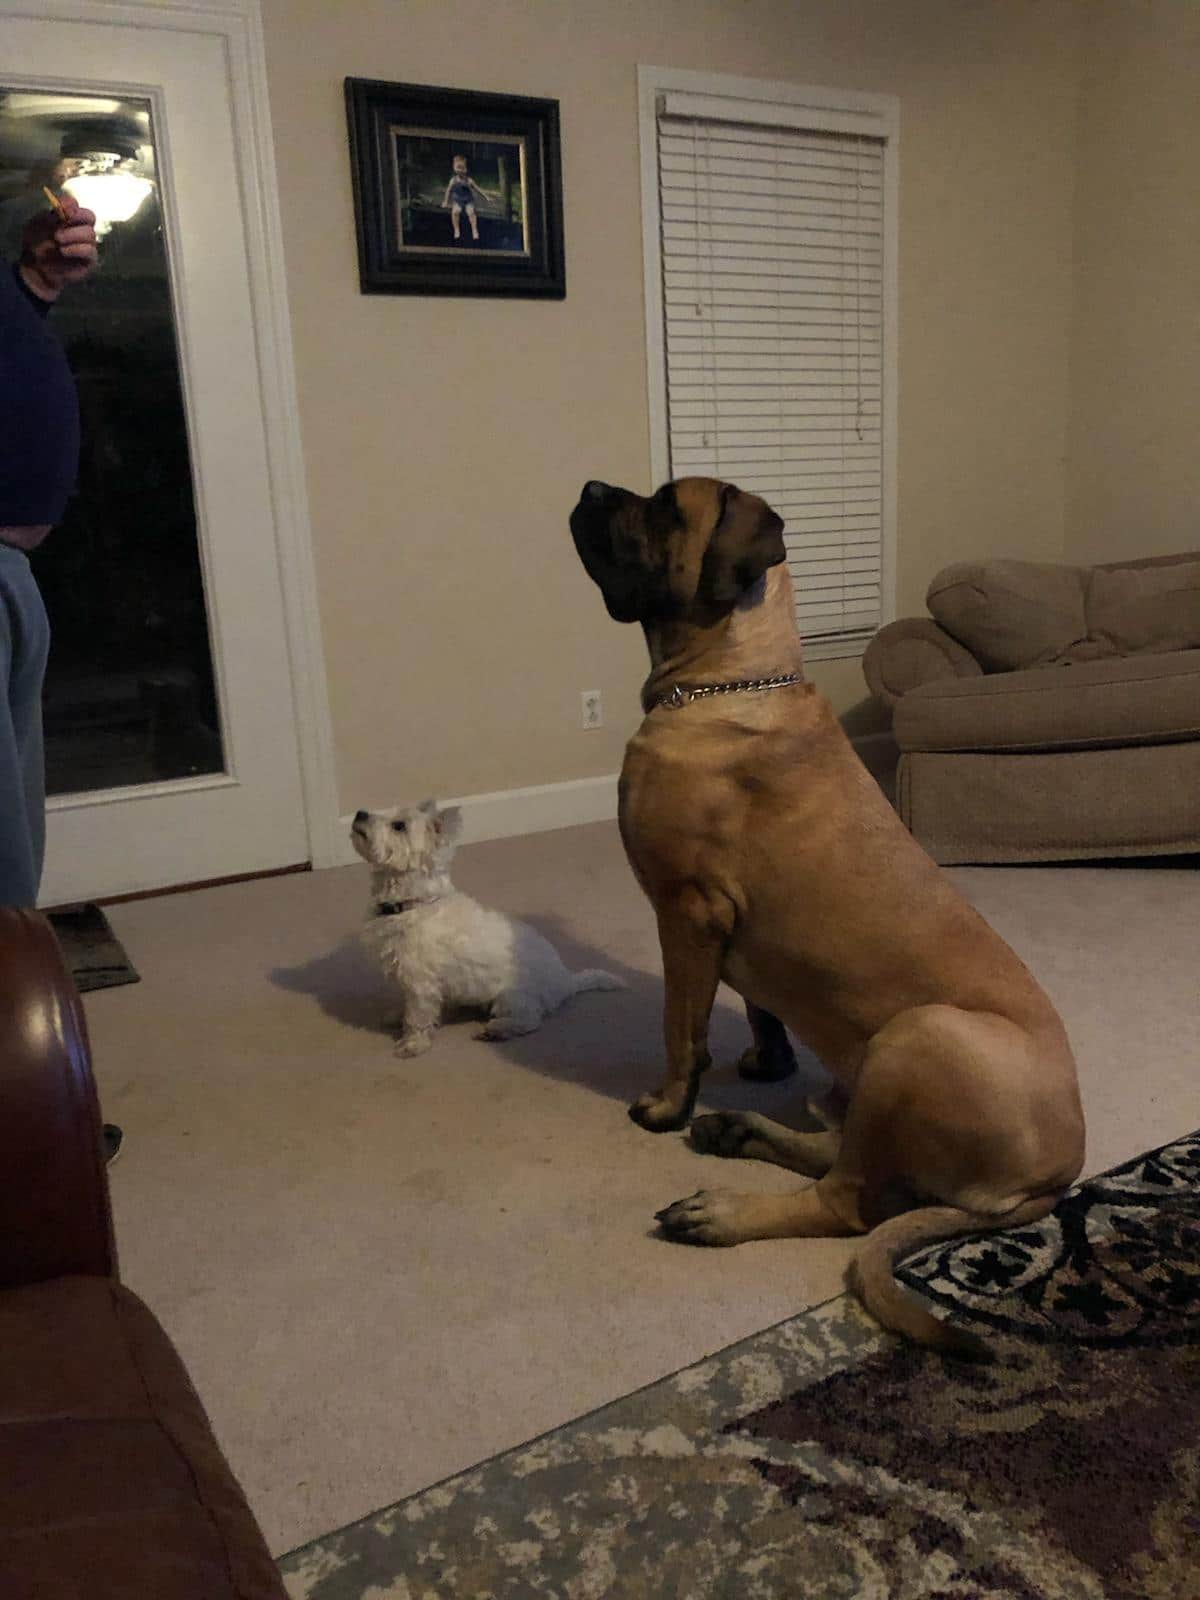 Huge dog and his tiny buddy at attention